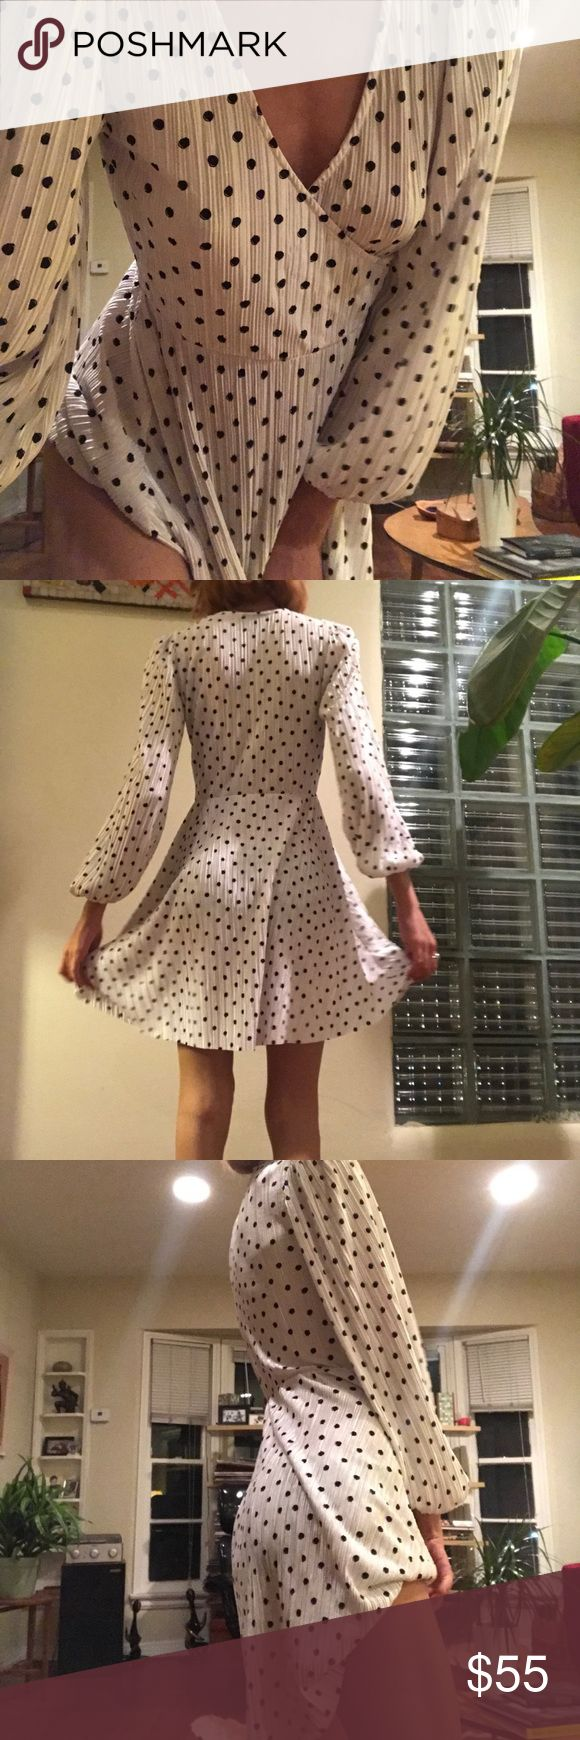 Topshop Polka Dot Chiffon Dress Bell sleeves Polka dot print Excellent material Cinched at the waist  #cinched #blouse #bellsleeves #topshop #topshopunique #polkadot #print #printdress #printeddress #chiffon #sale #rare #instagram #cute #reformation #poshmarksale #ebayer #goodwill #goodwillbins #goodwillfinds #goodwilloutlet #lifeofareseller #bargains #new #gentlyused #preowned #vintagej #shopmycloset #women #womensfashion #jcrew #ridiculous #youtube #giveaways #linkinbio #bohochic #boholook…